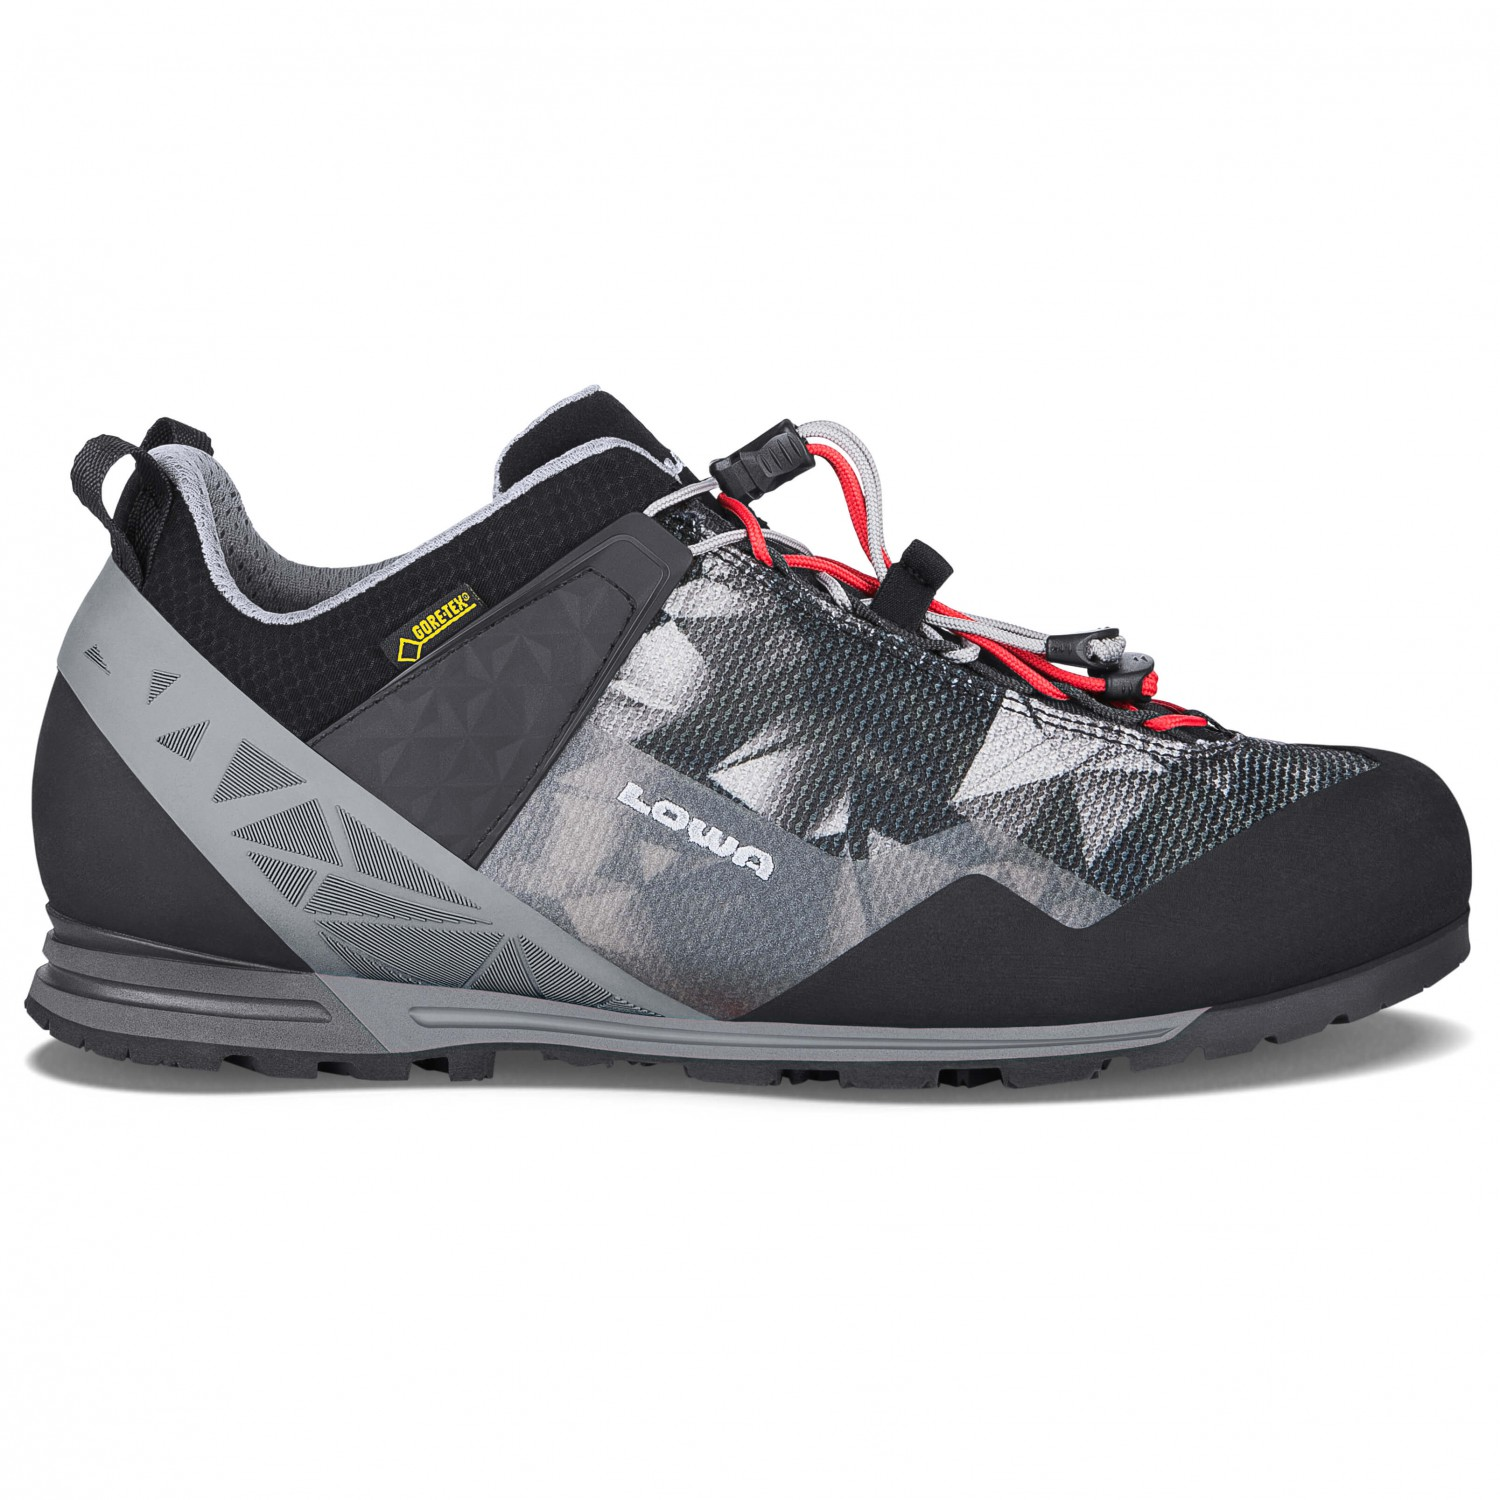 Lowa Approach Pro GTX Lo Approachschuhe Anthrazit Limone | 9,5 (UK)  spare mehr